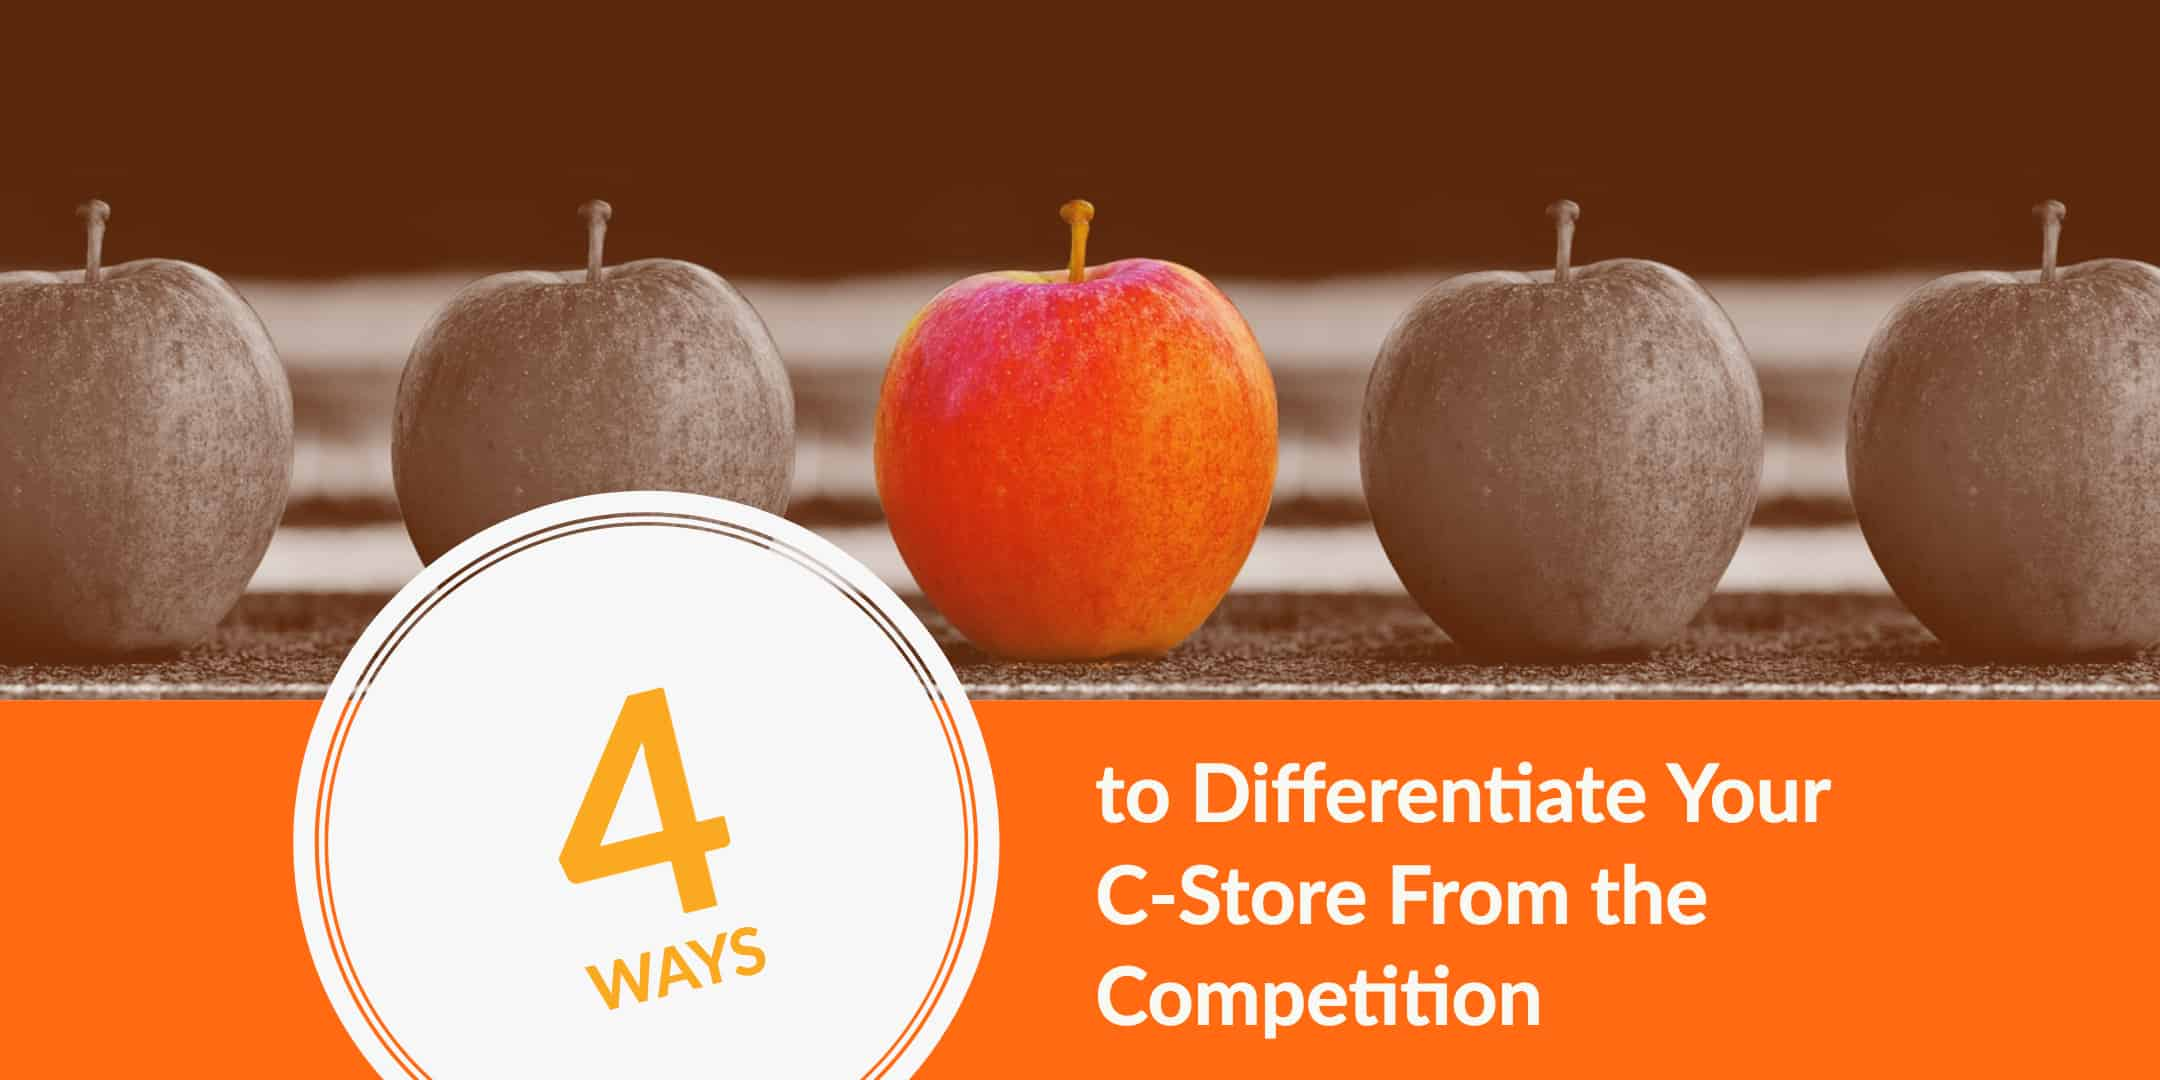 4Ways to Differentiate Your C-Store from the CompetitionStrasGlobal